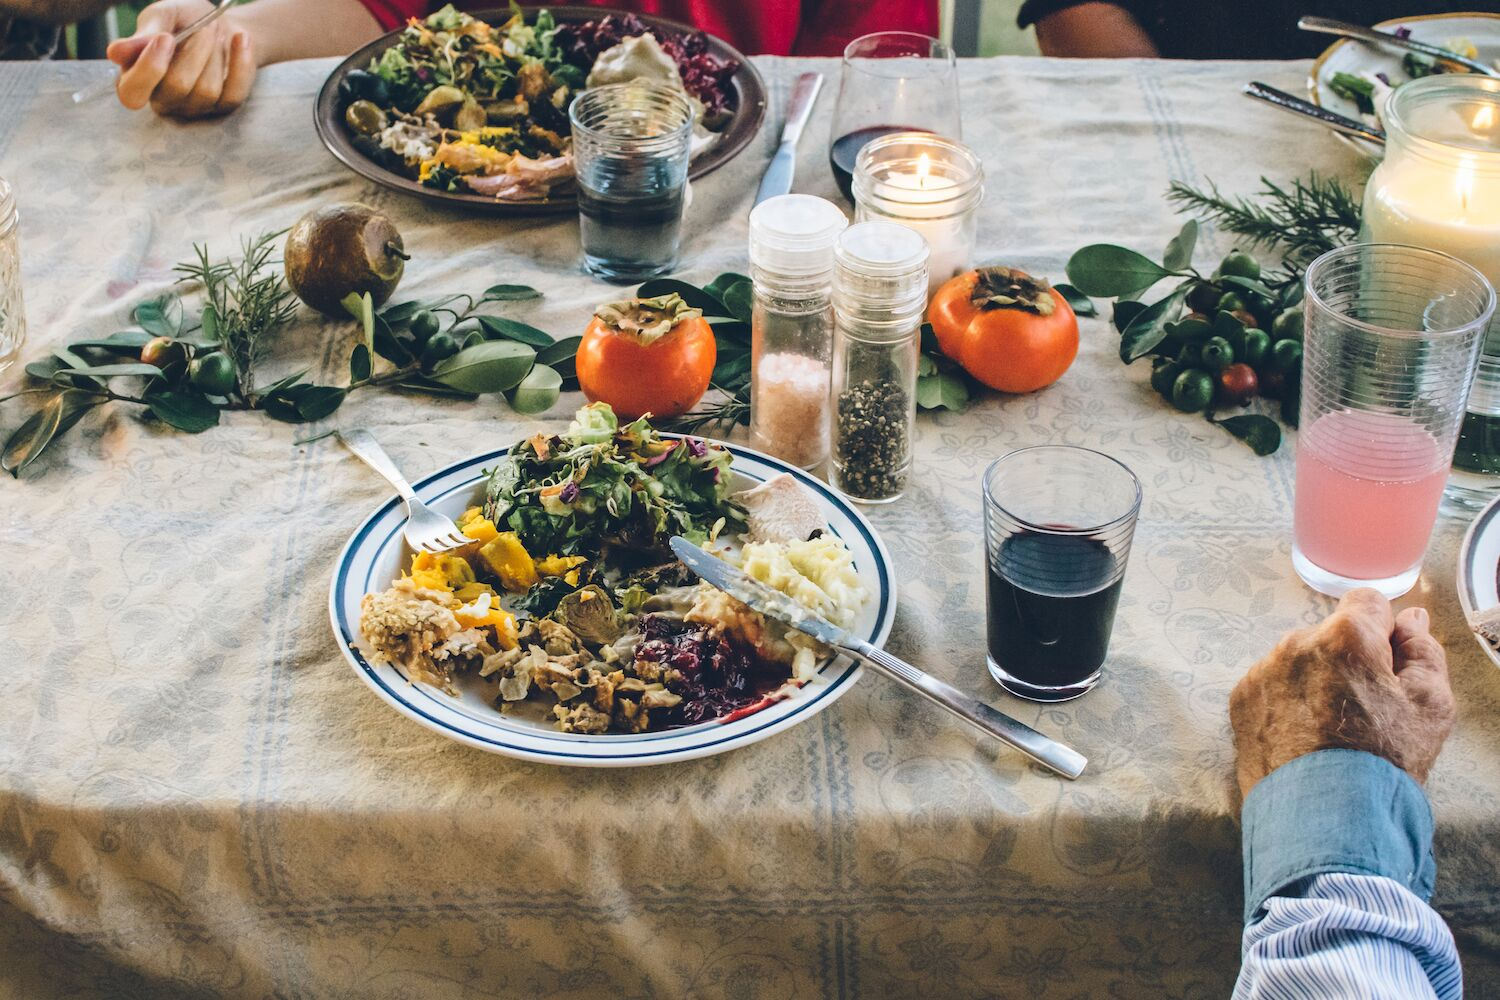 a thanksgiving table with plates of food and three peoples hands